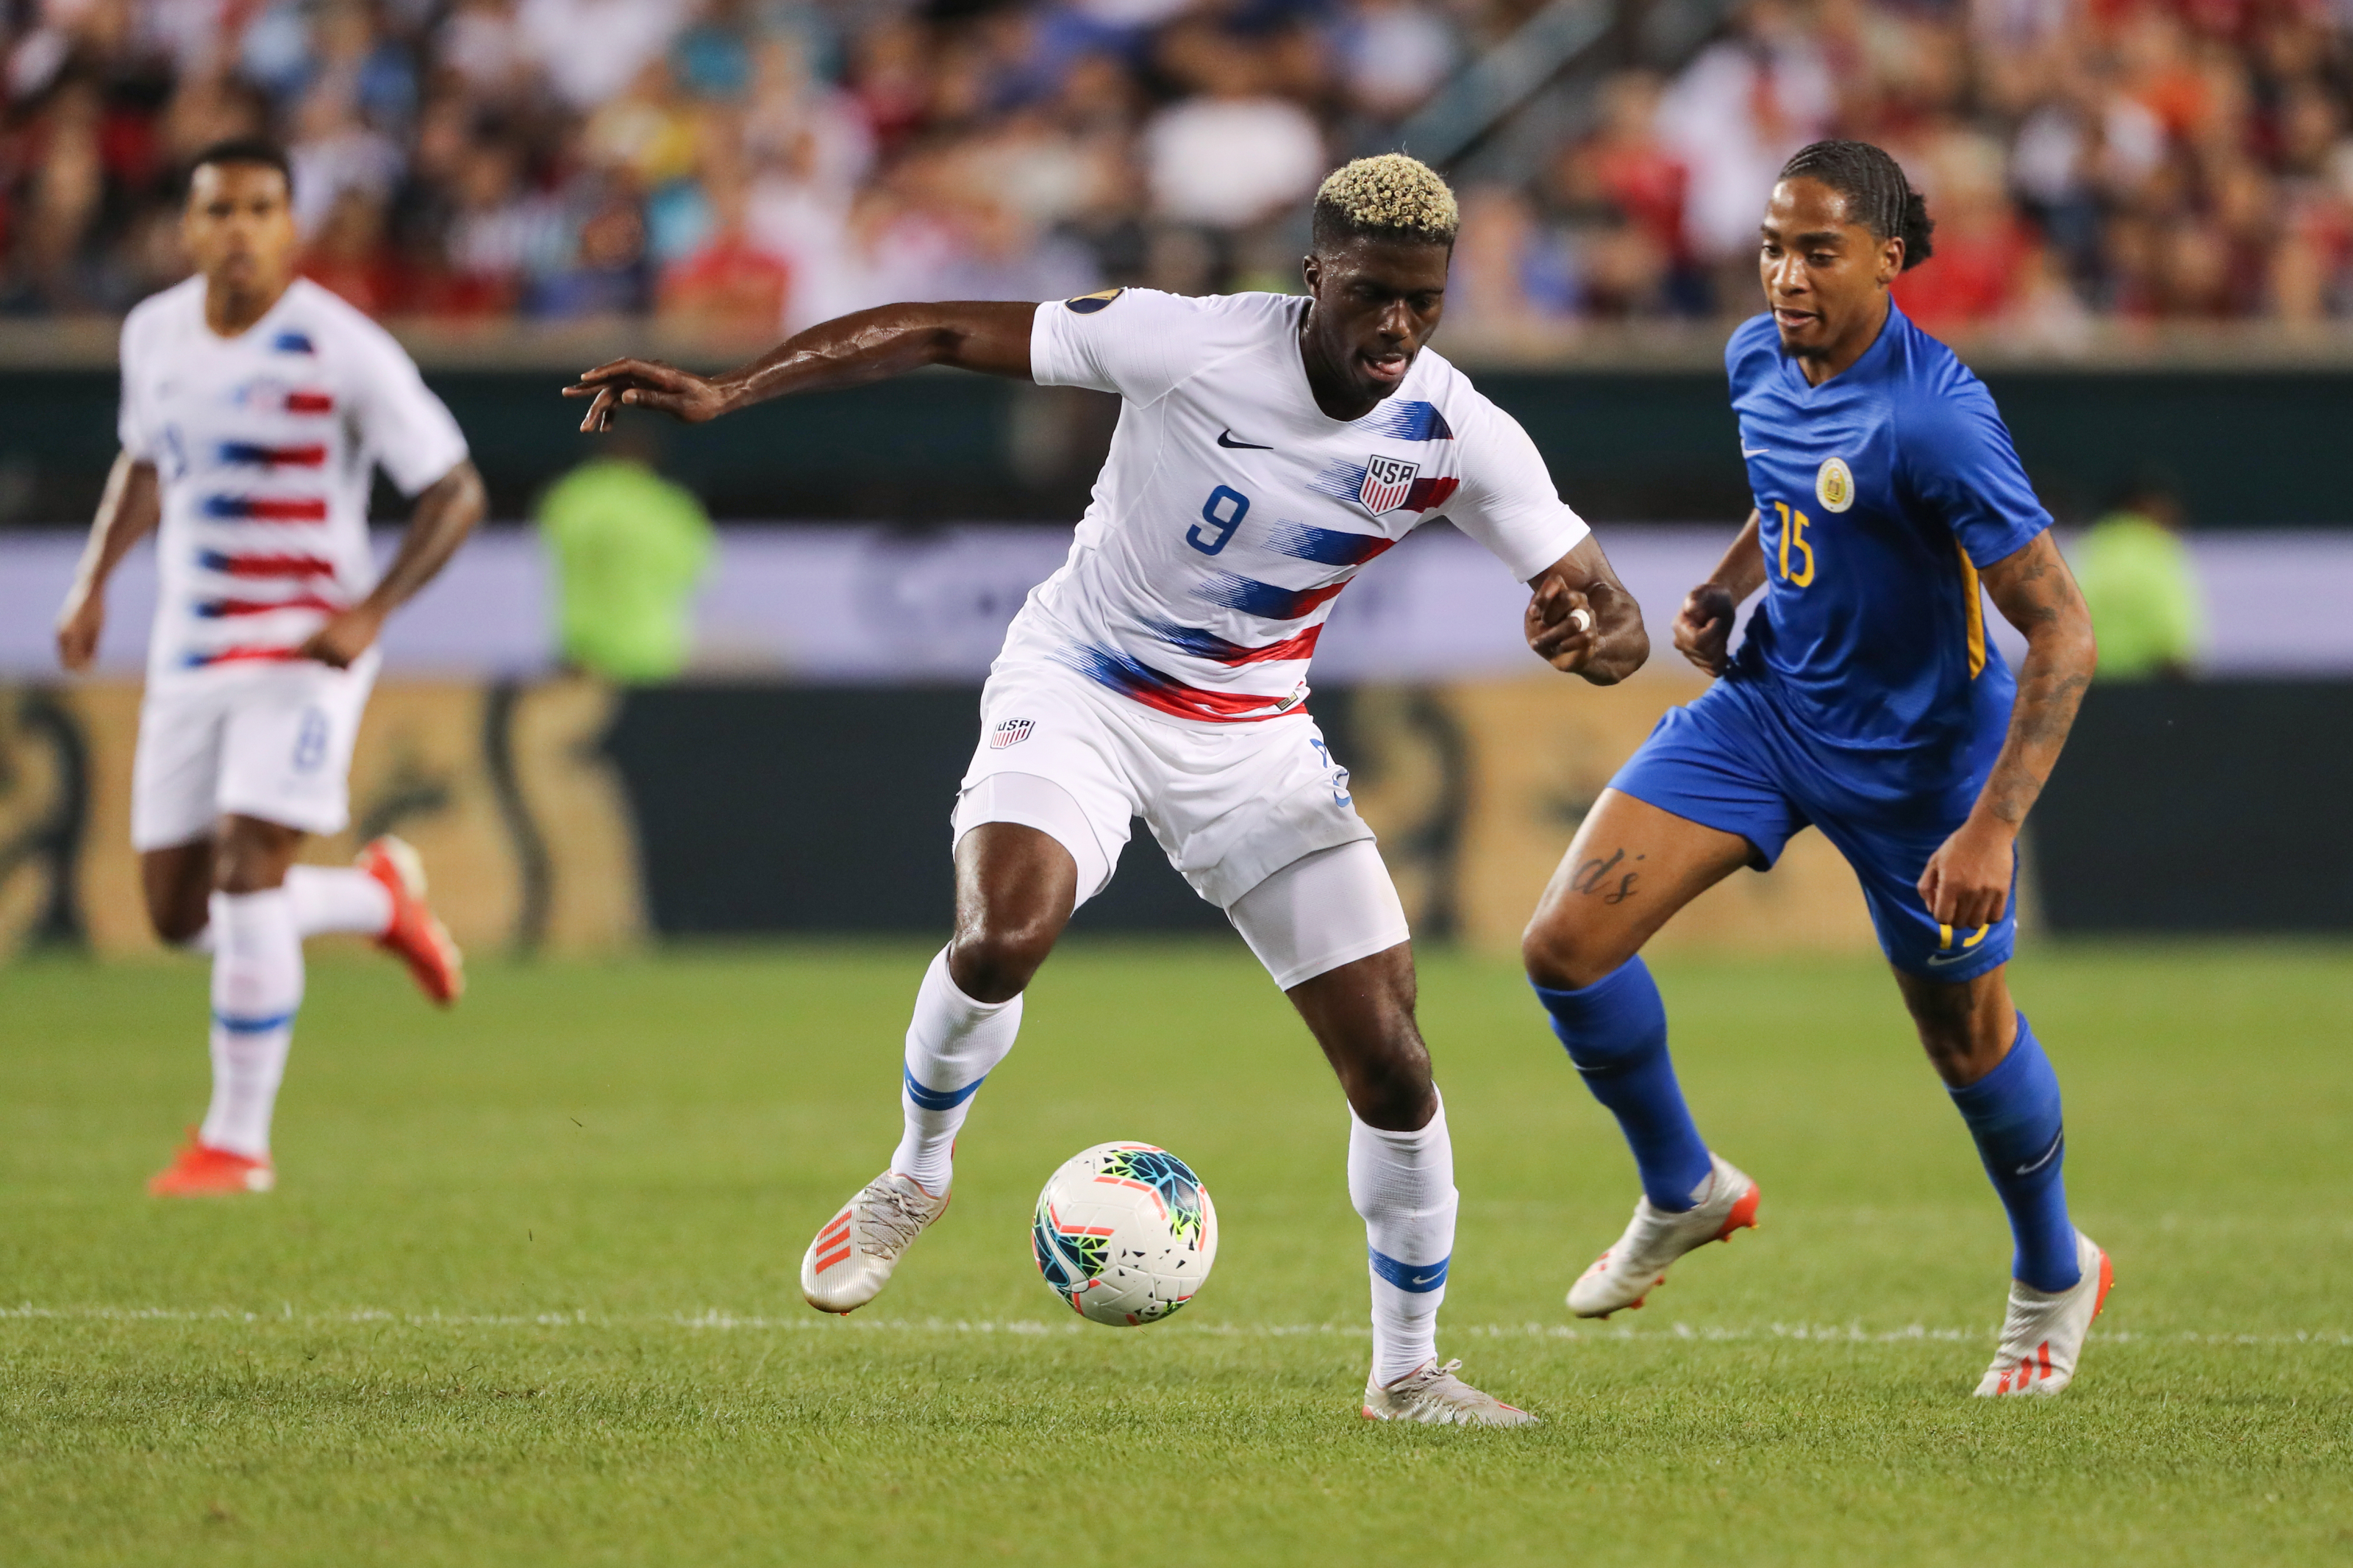 USMNT: Top 10 players to watch in 2020 MLS season